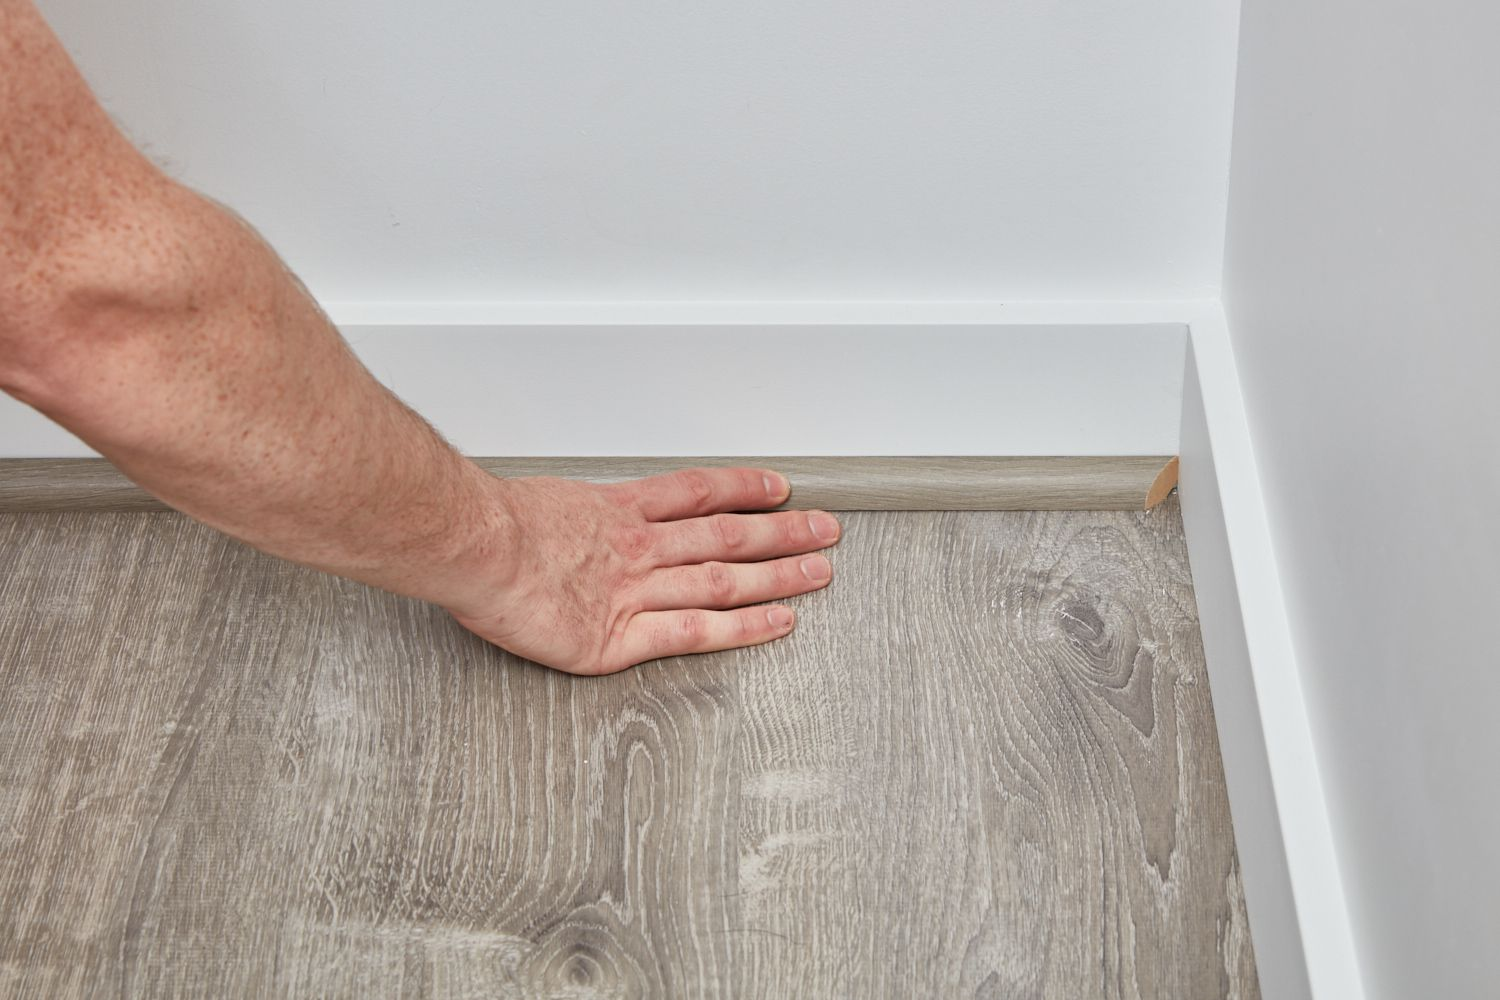 How To Install Shoe Molding Or Quarter, Laminate Flooring Molding Installation